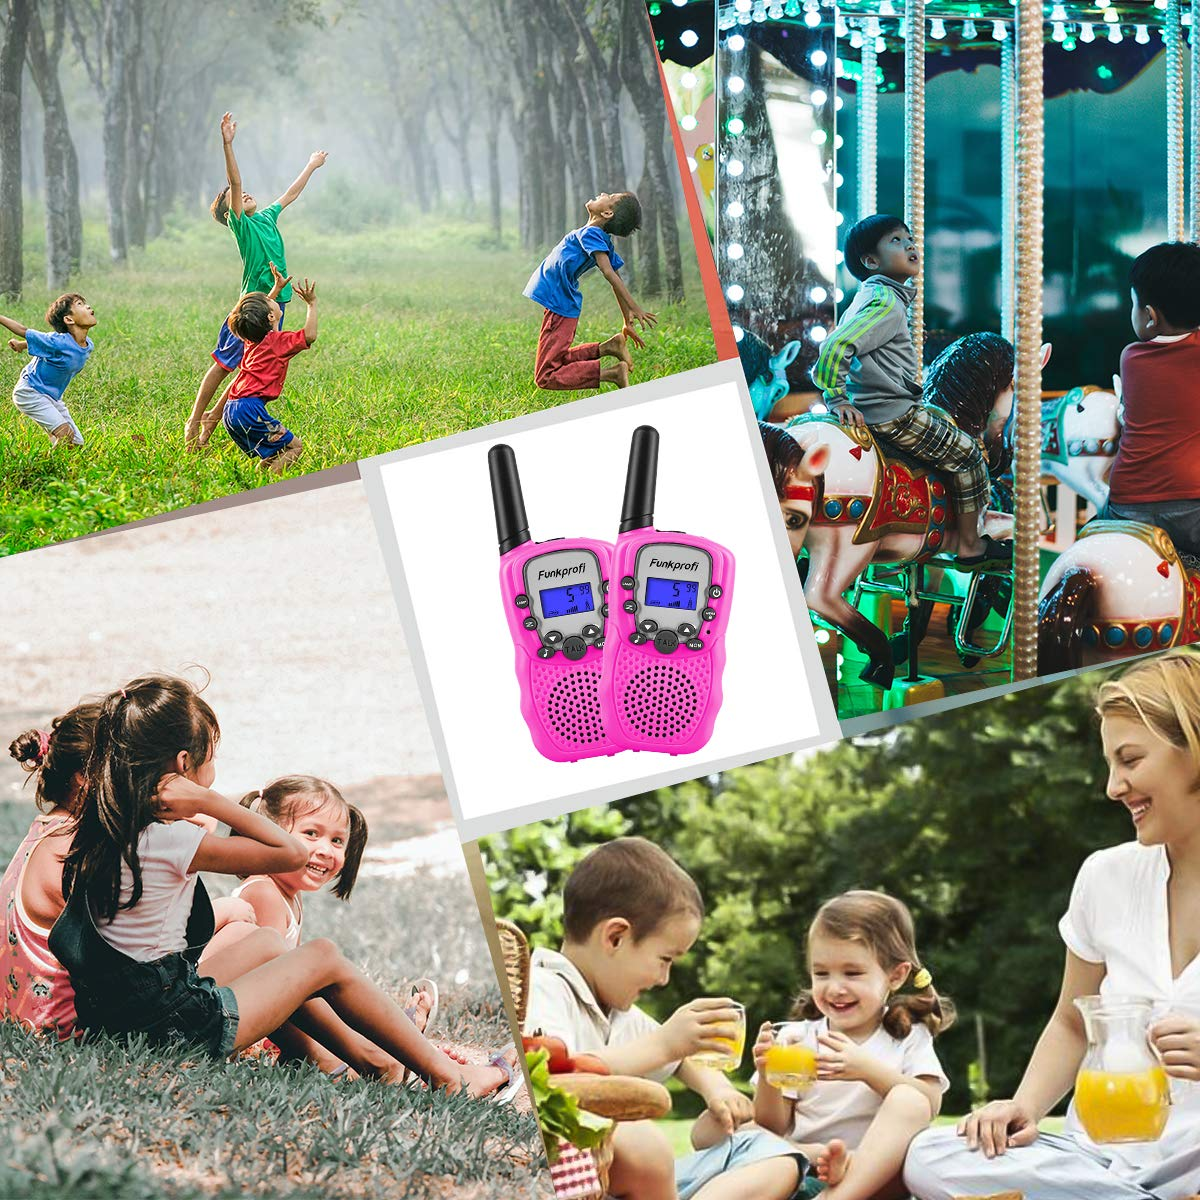 Funkprofi Walkie Talkies for Kids, VOX Hands Free Noise Canceling Kids Walkie Talkies with Belt Clip and LCD Screen, 22 Channels Long Range Two Way Radios for Camping Hiking Family Activities by Funkprofi (Image #7)